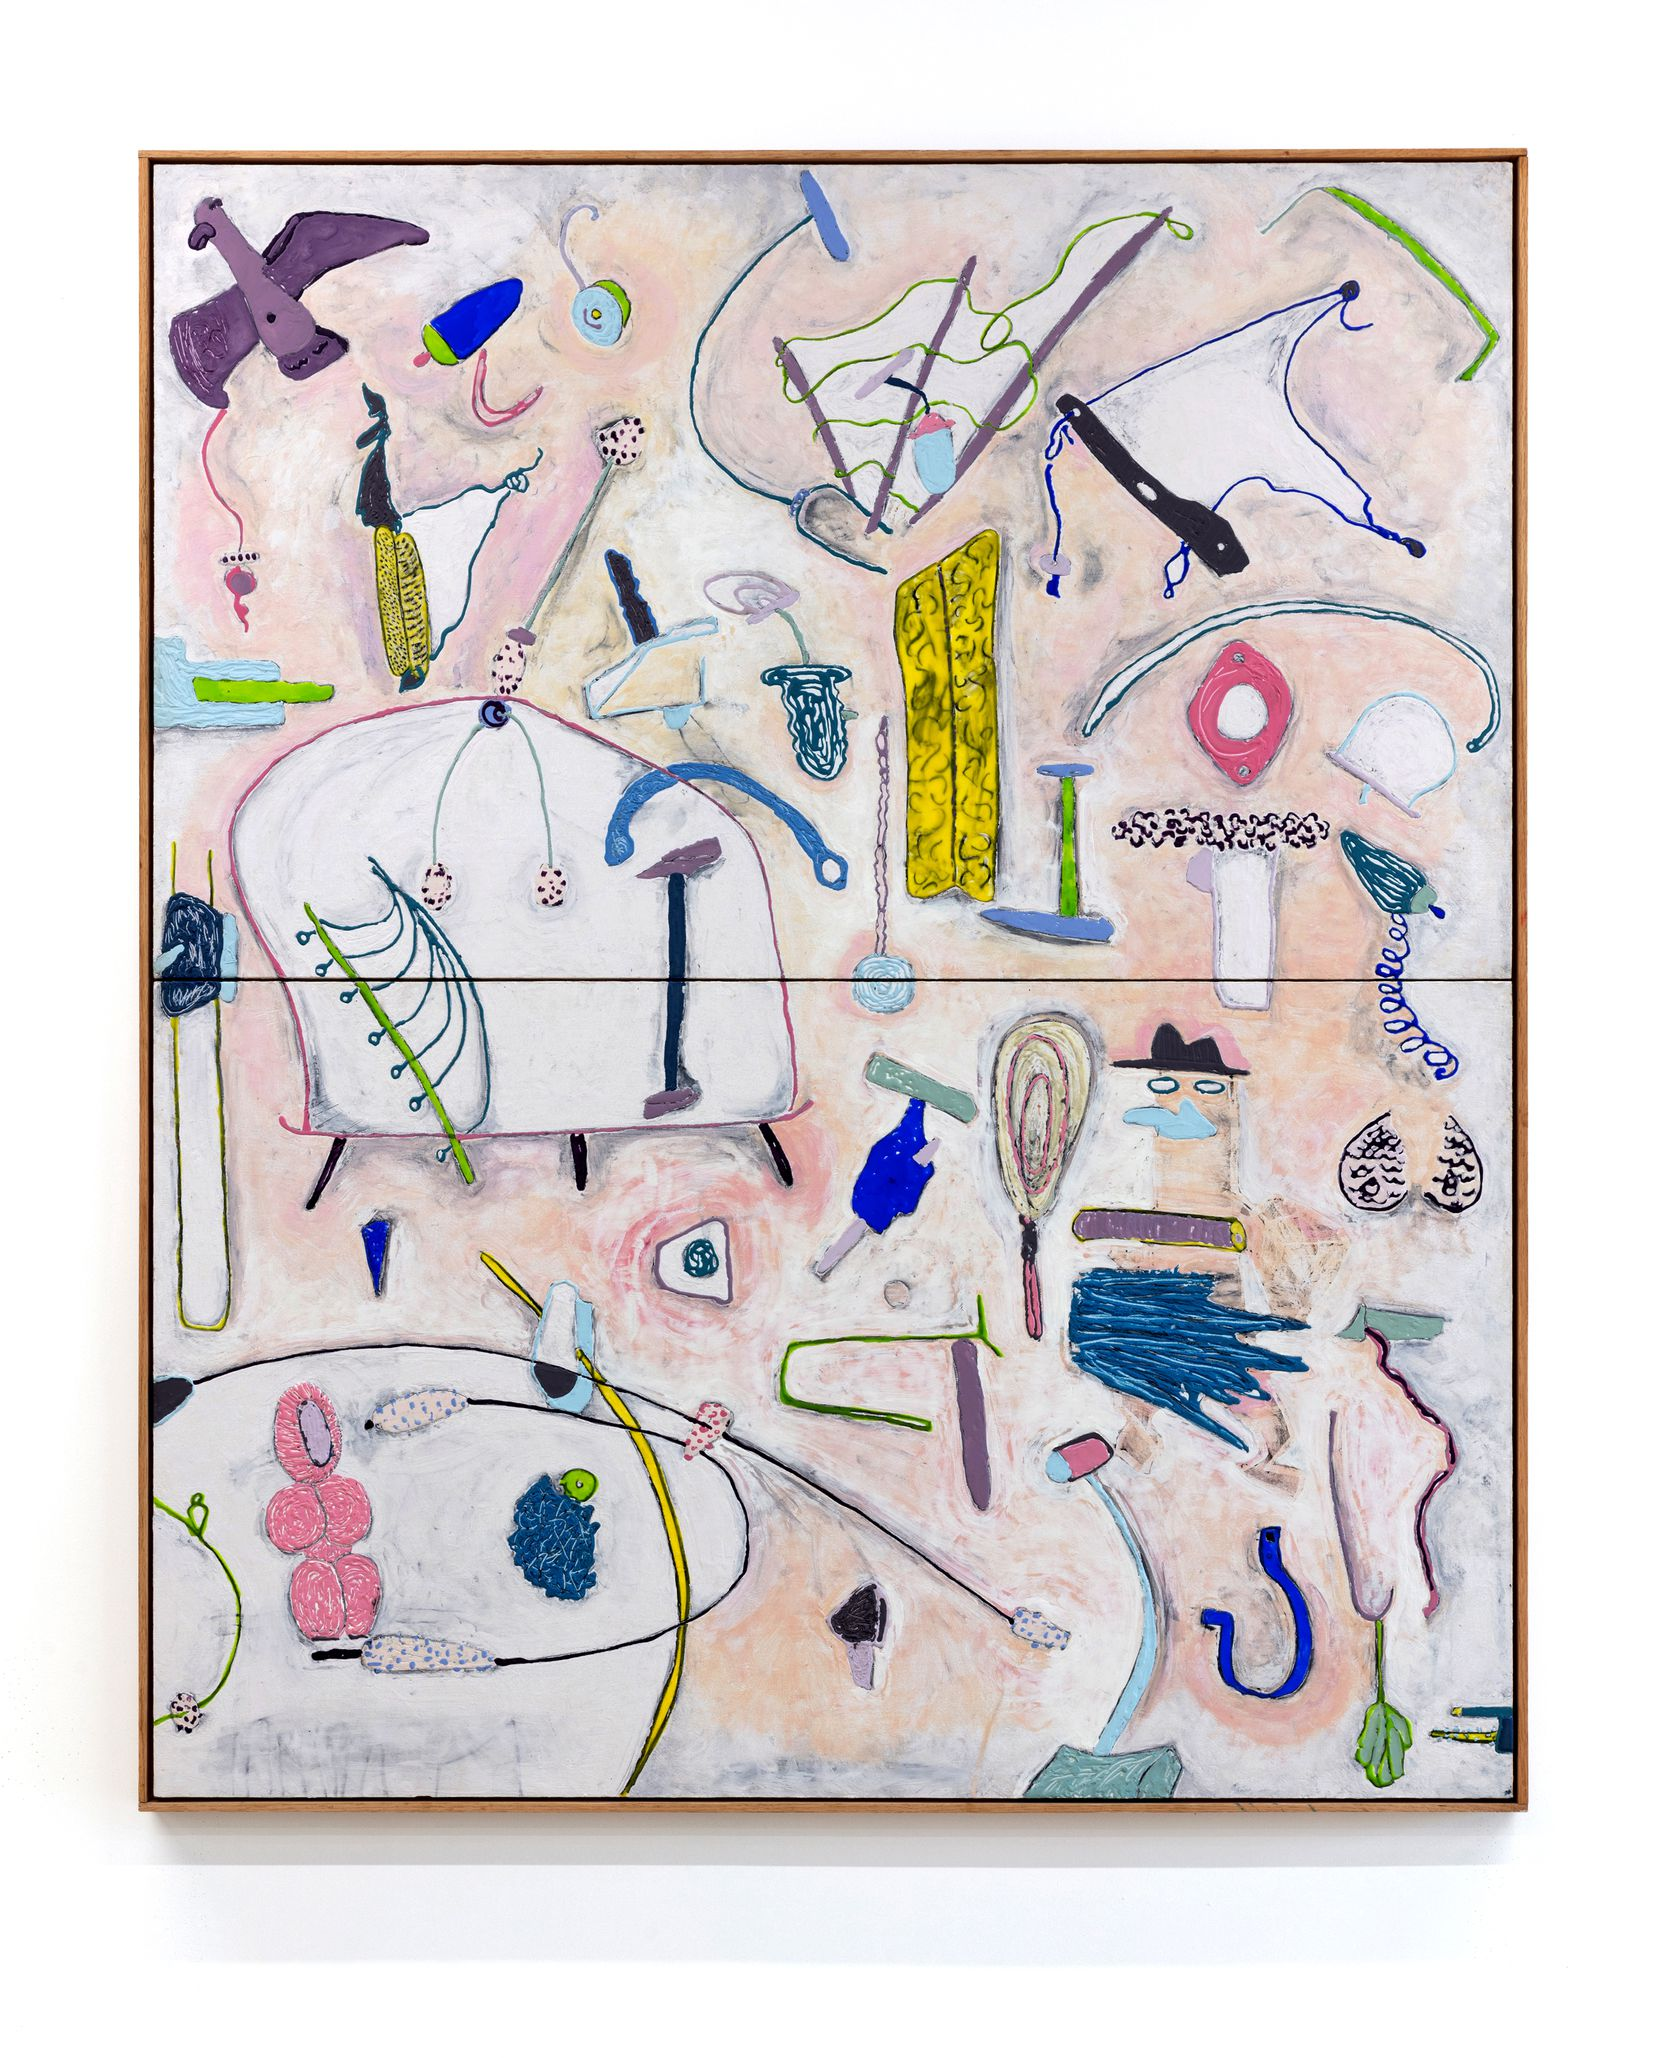 """John Miranda's 2020 piece """"I'm All Over the Place"""" is among his artworks on display at Cluley Projects through June 26."""